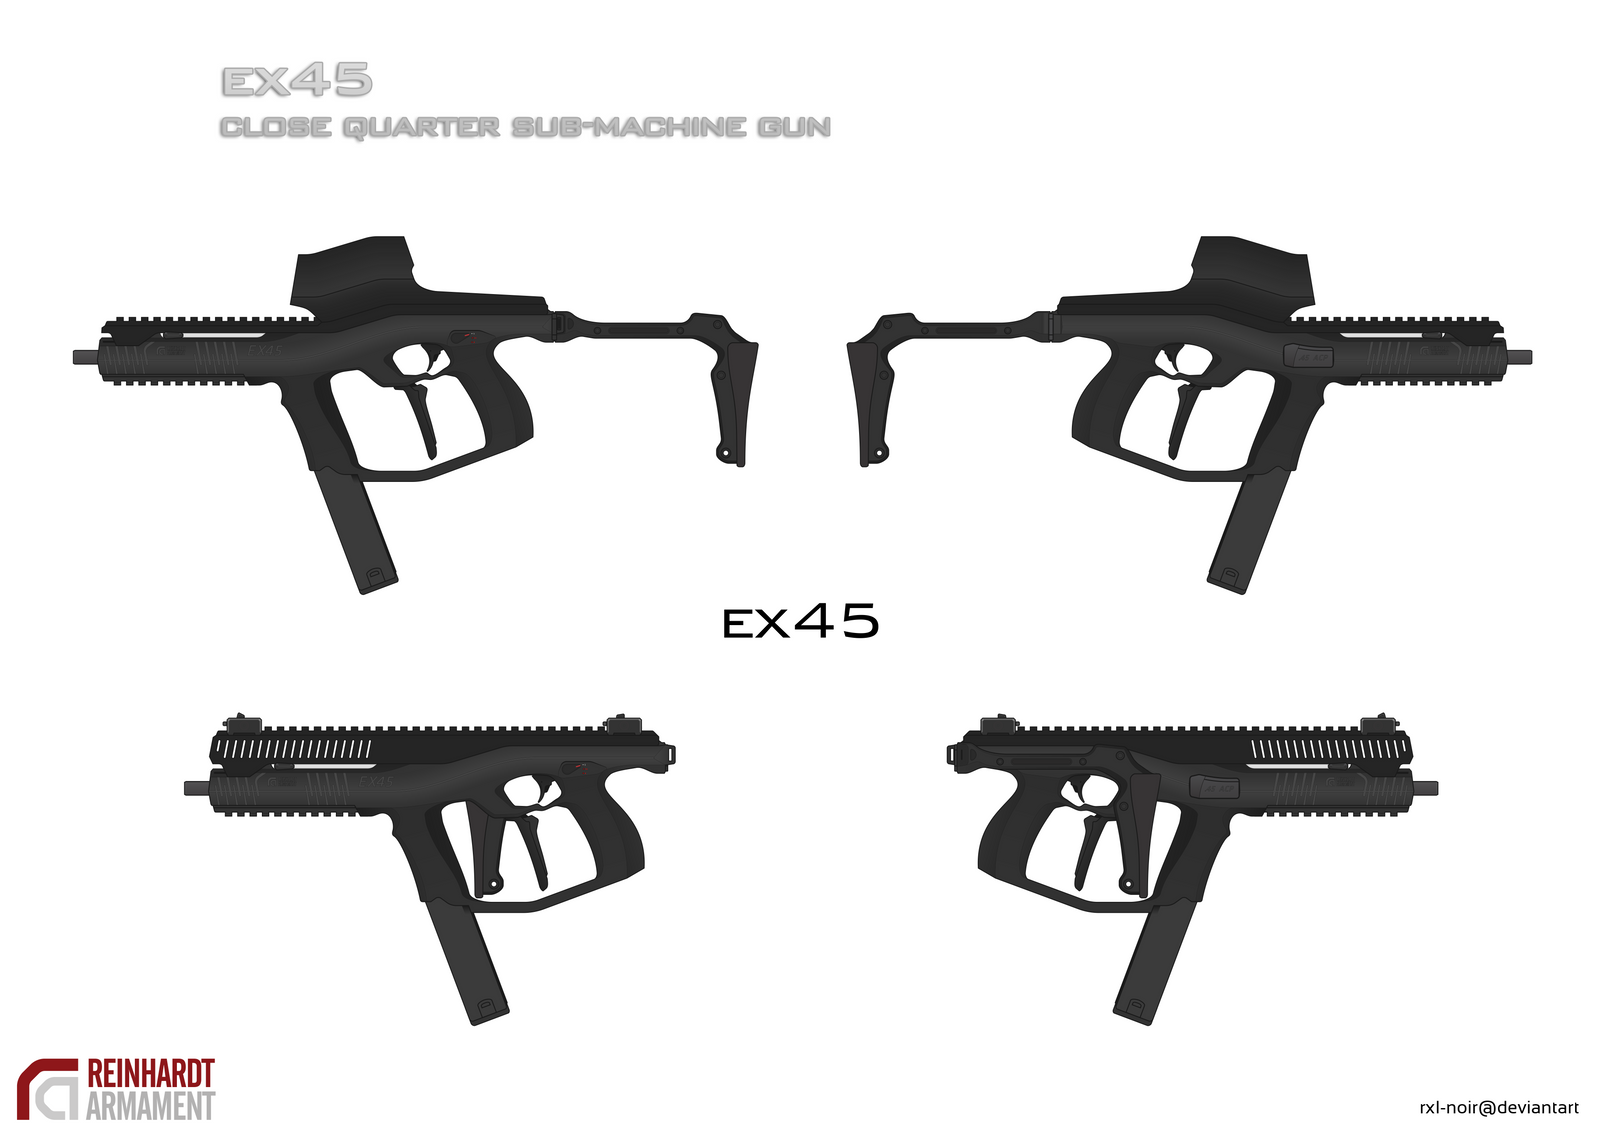 EX45 Sub-Machine Gun by Rxl-Noir